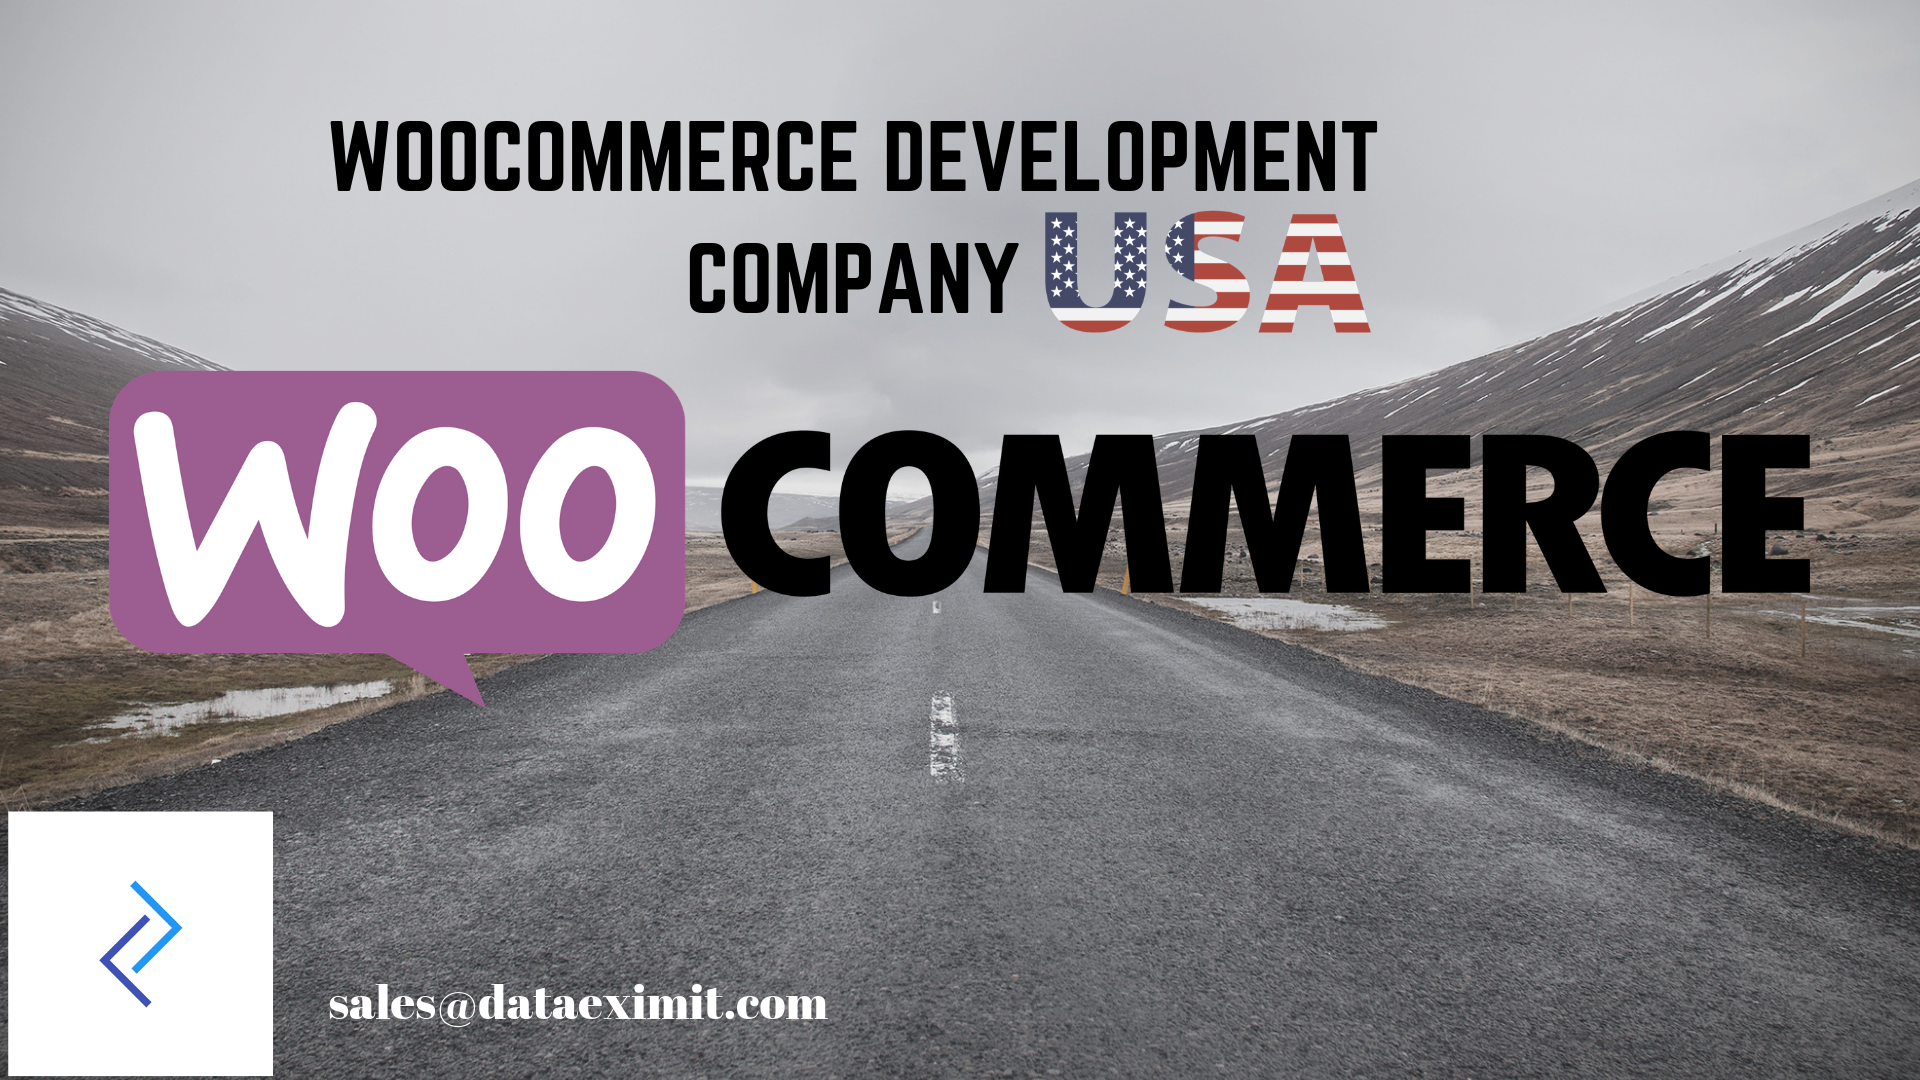 Which is the best WooCommerce Development Company in USA? - Quora